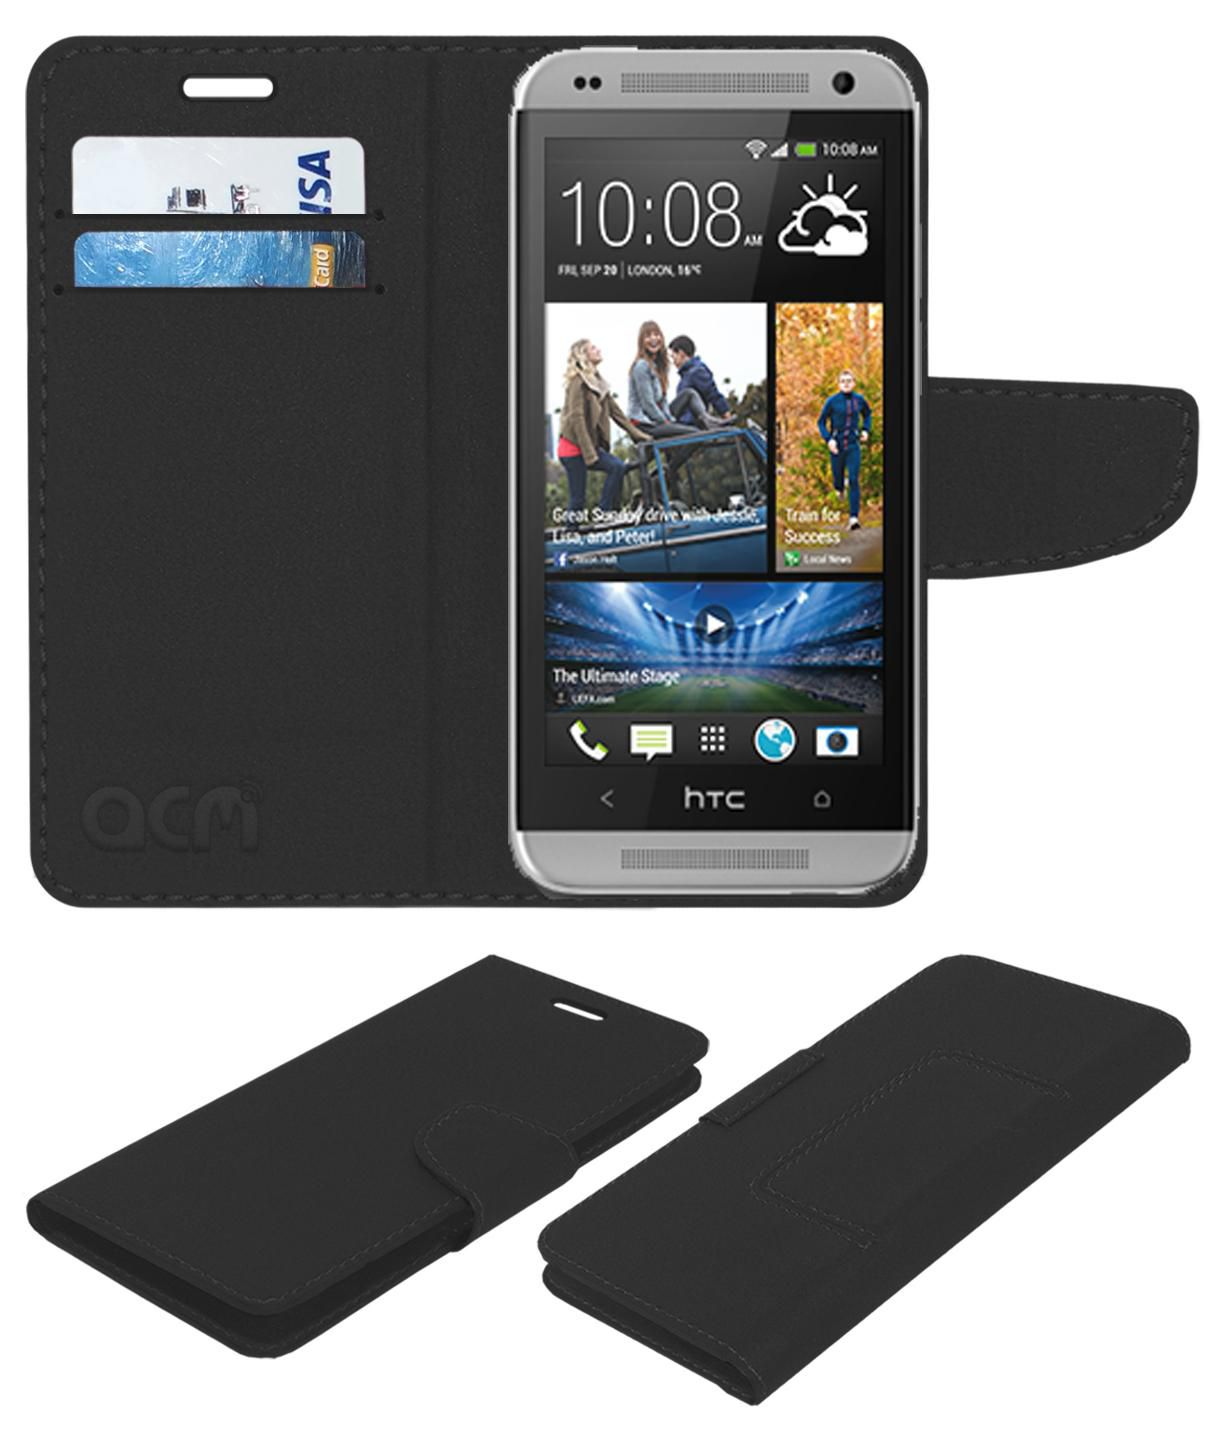 Htc Desire Flip Cover by ACM - Black